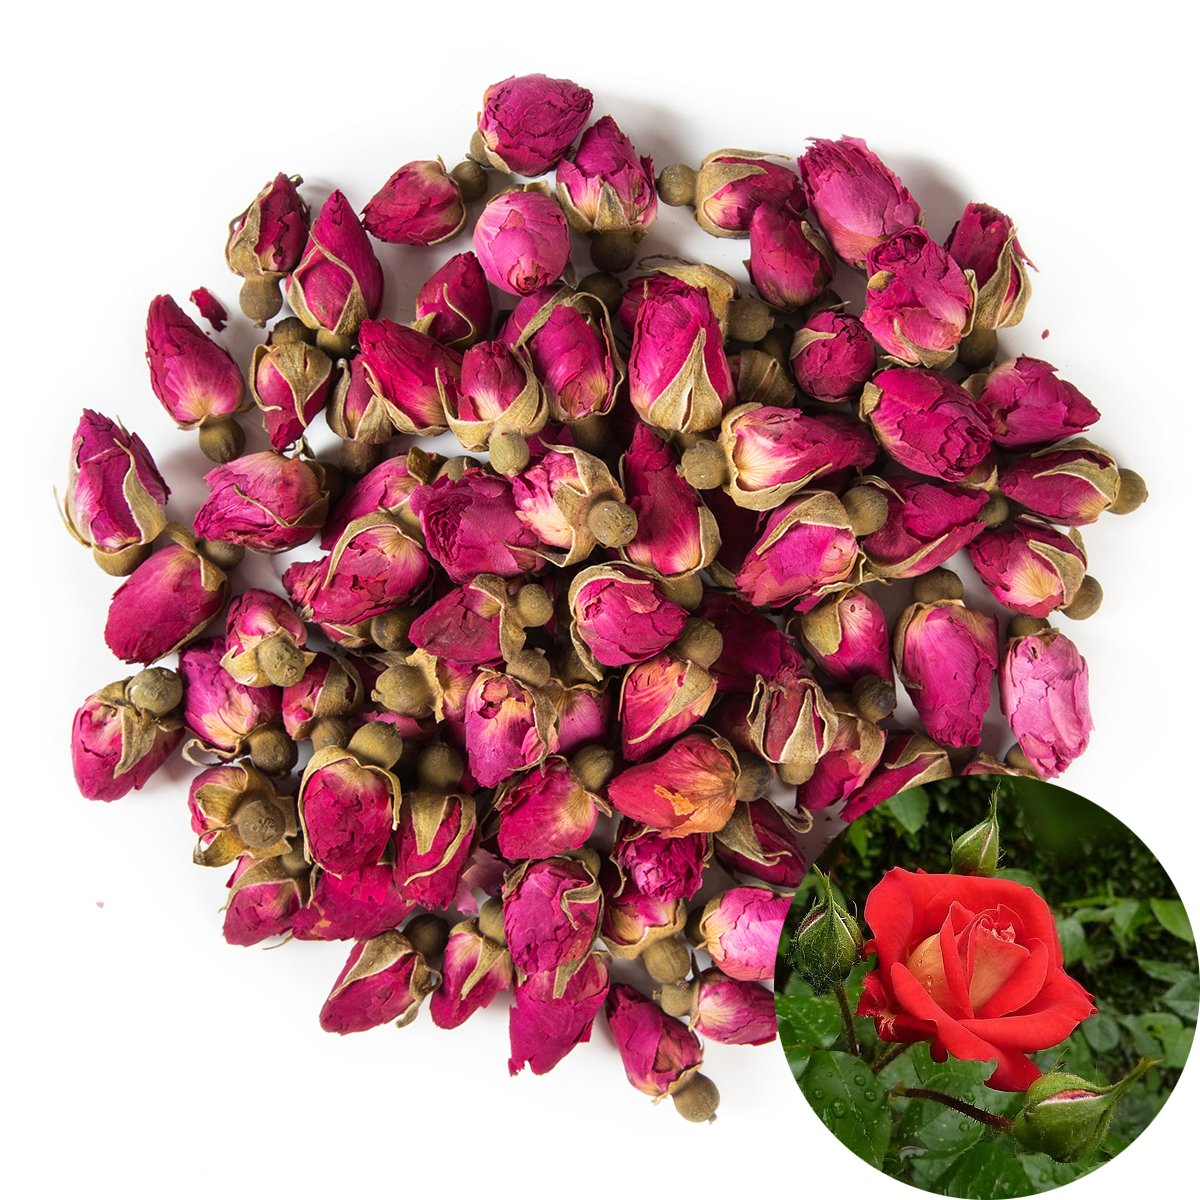 TooGet Fragrant Natural Red Rose Buds Rose Petals Organic Dried Flowers Wholesale, Culinary Food Grade - 4 OZ by TooGet